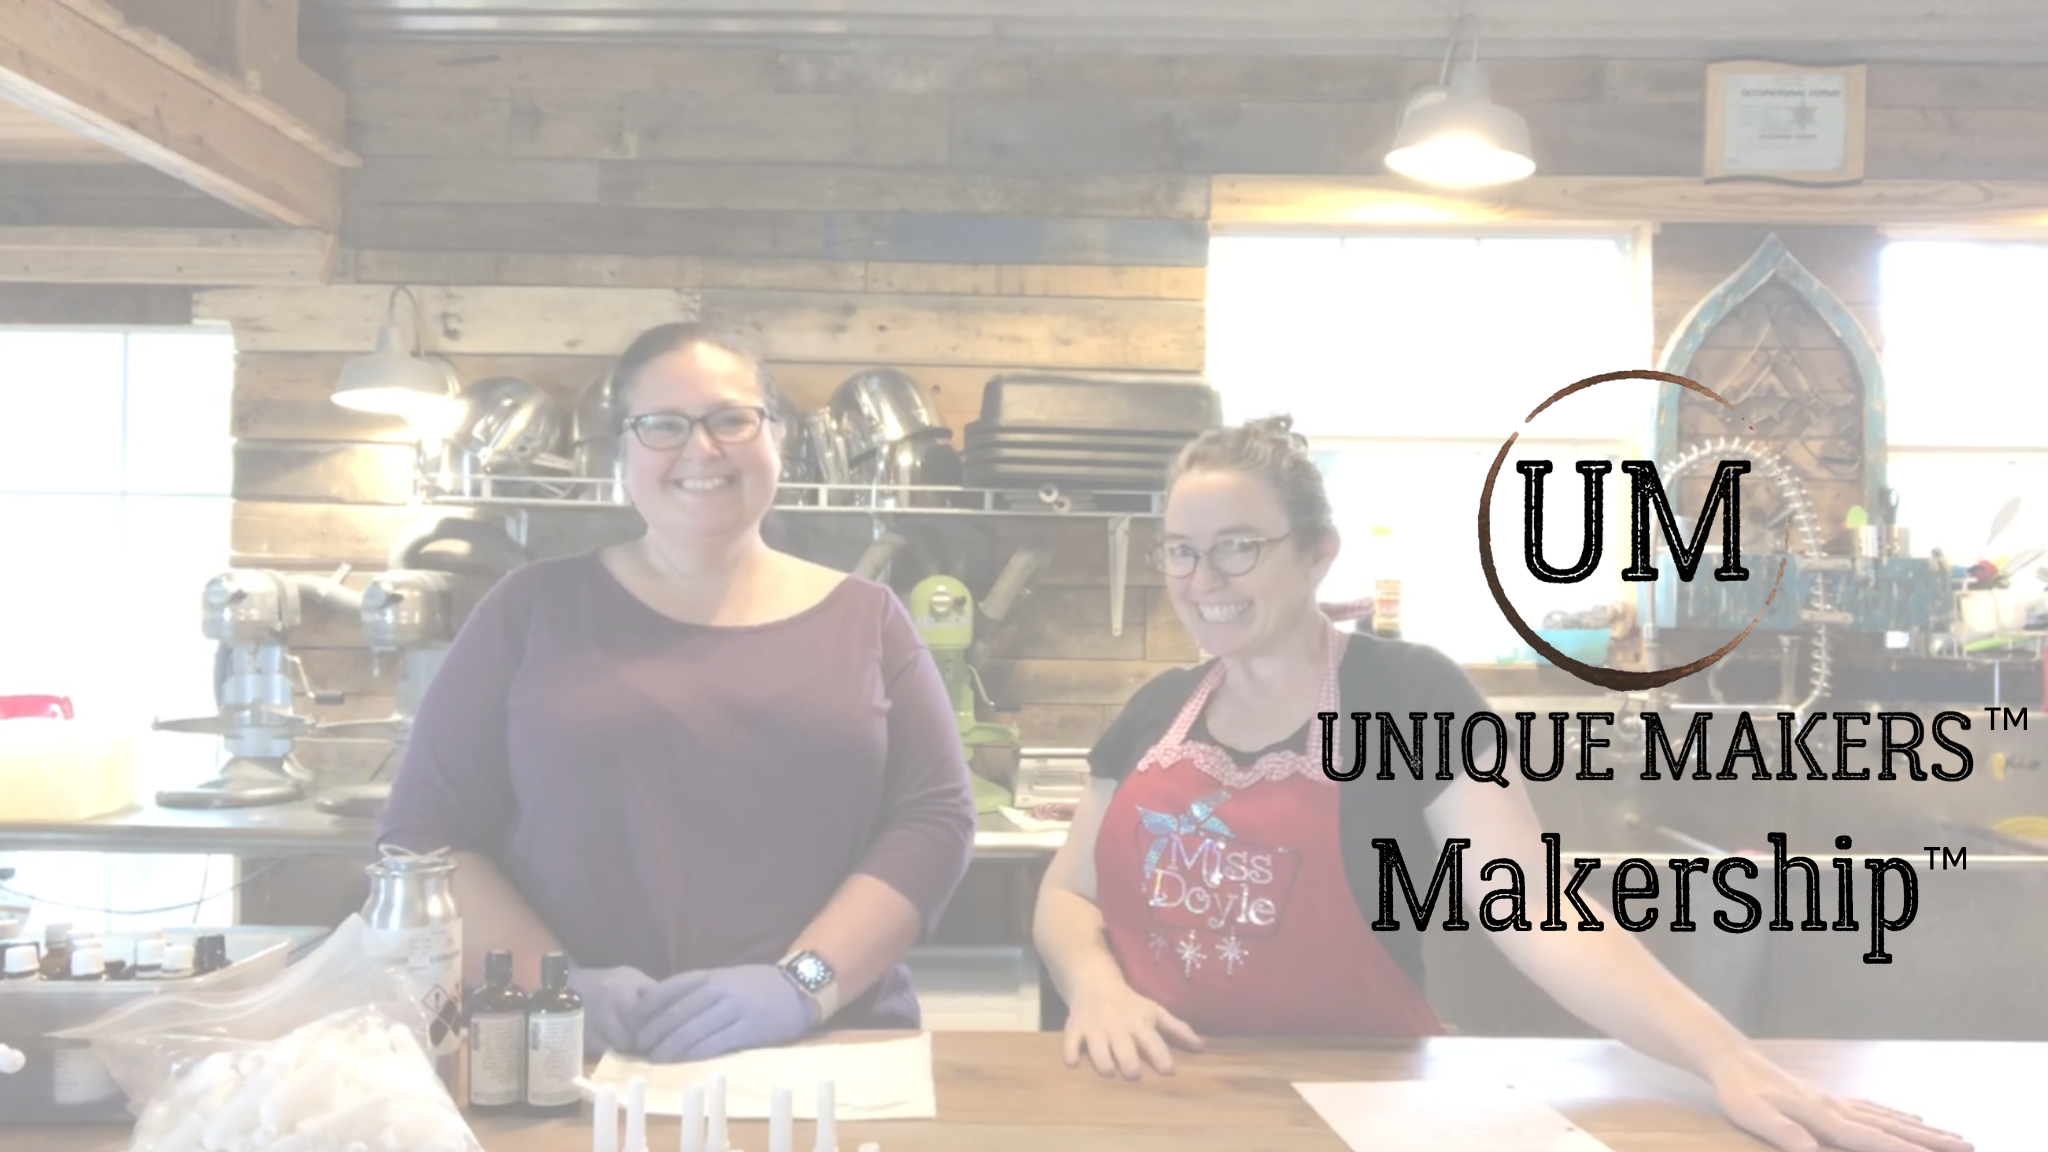 Unique makers group